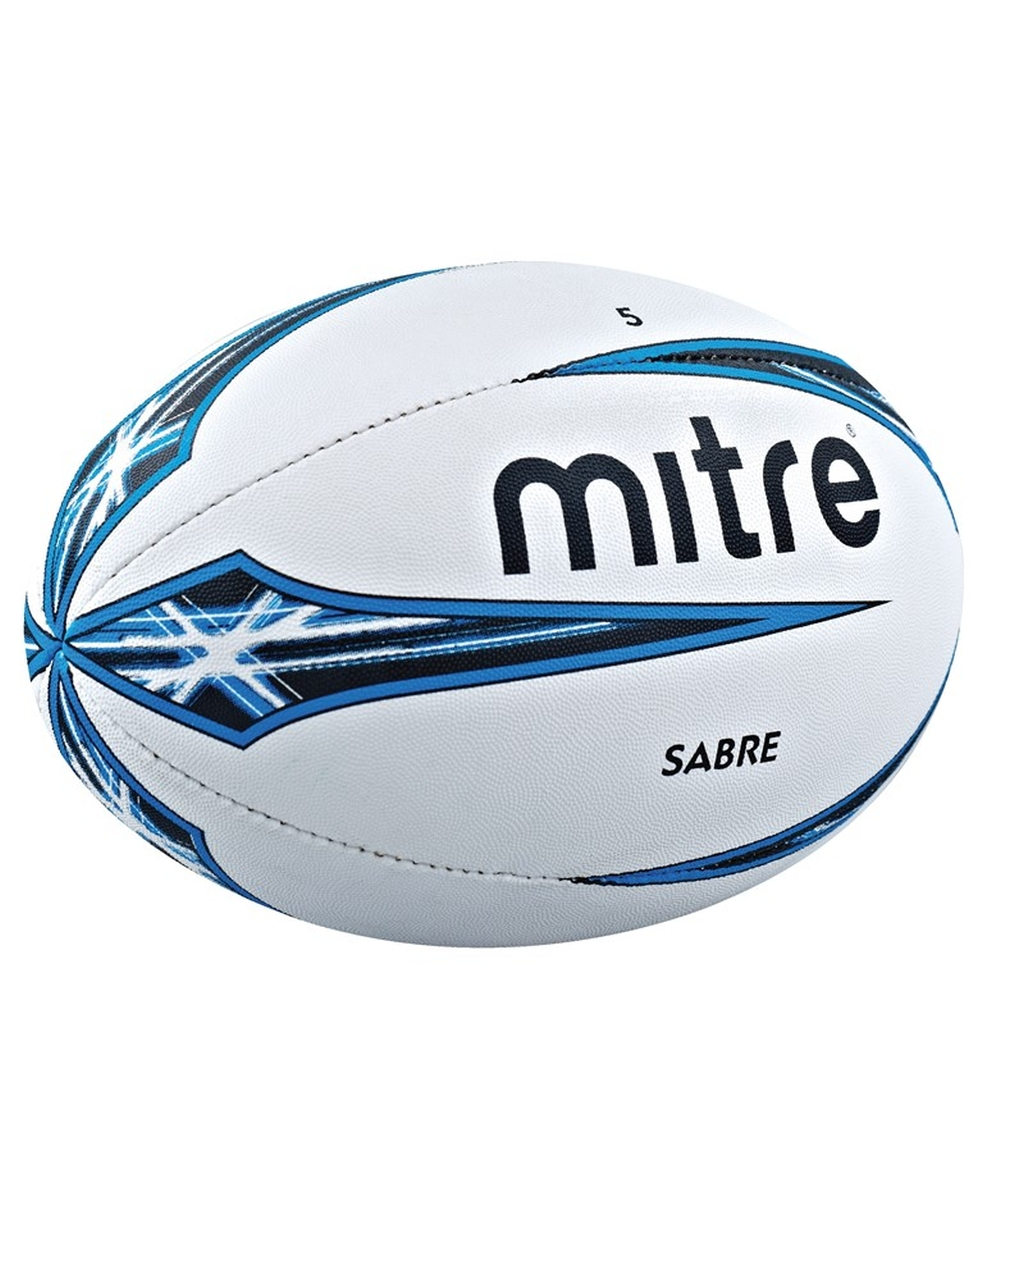 Mitre Sabre Rugby Ball Size 3